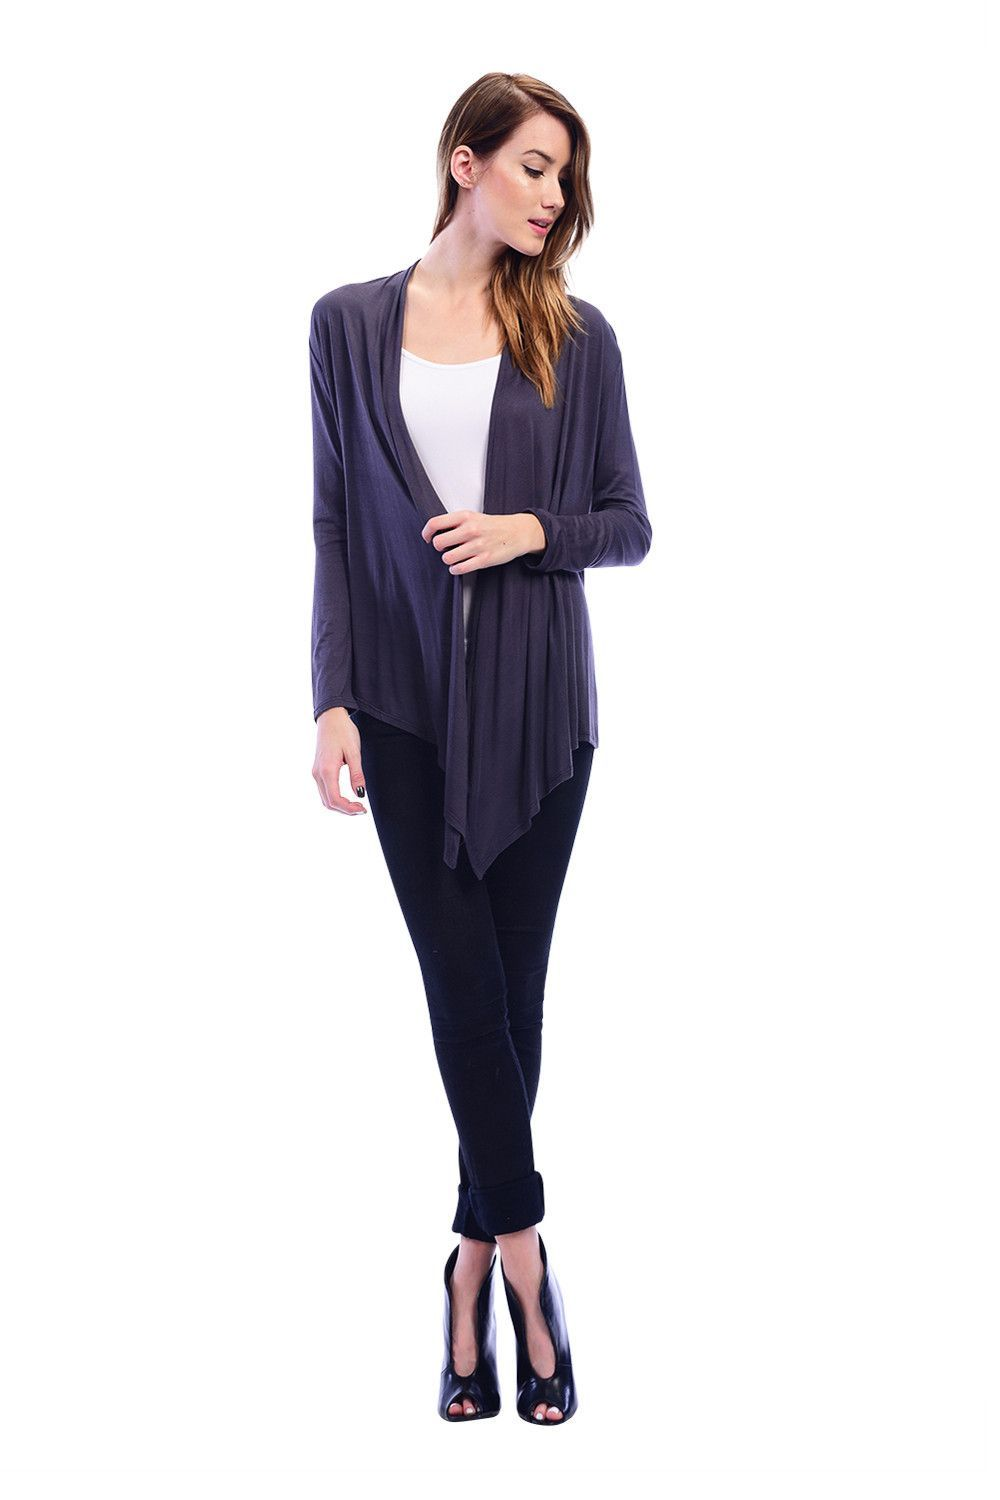 Fashion week Front drape cardigan how to wear for woman